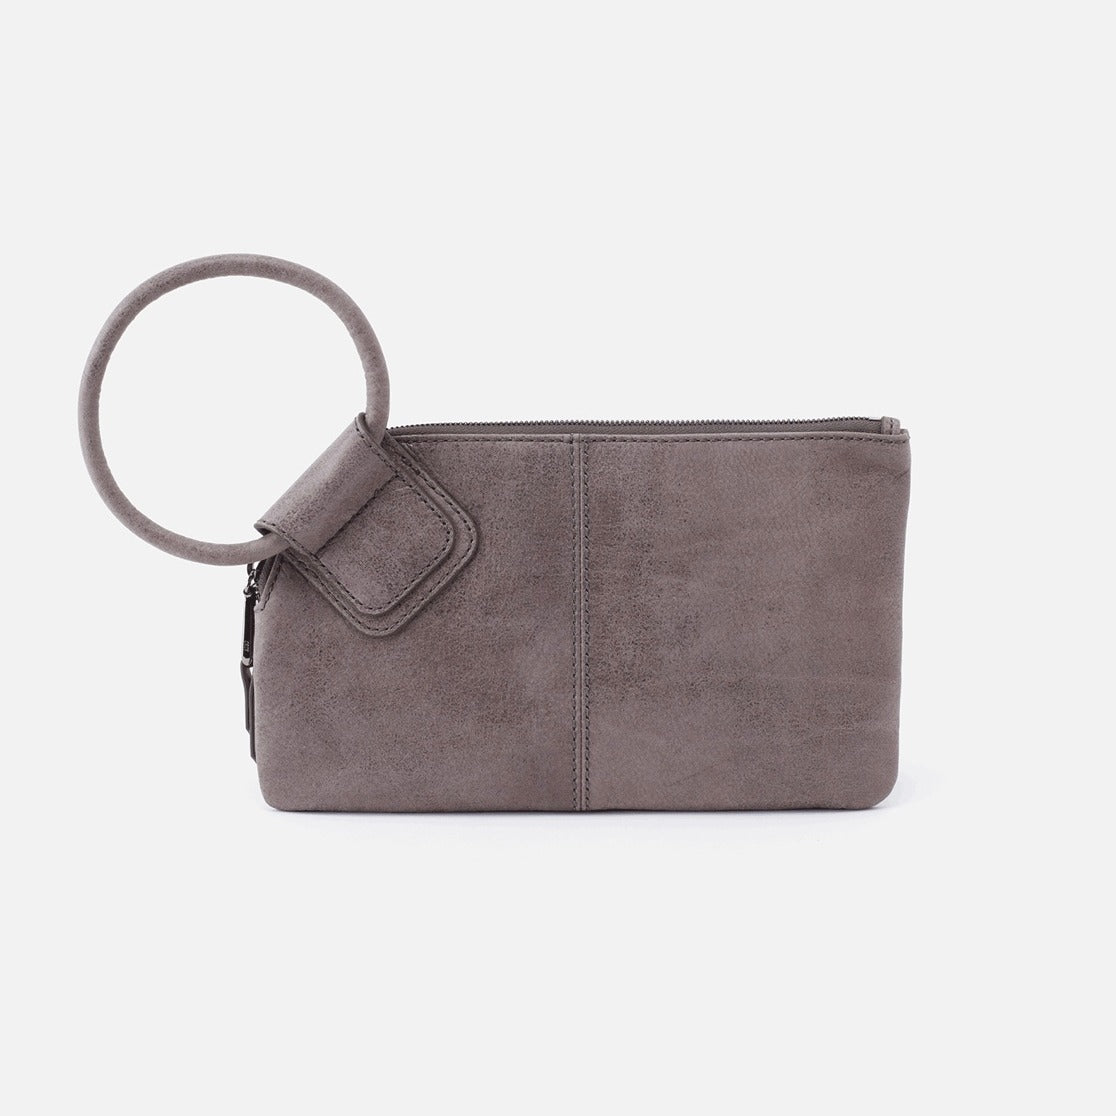 Sable Hobo Wristlet Clutch in Titanium